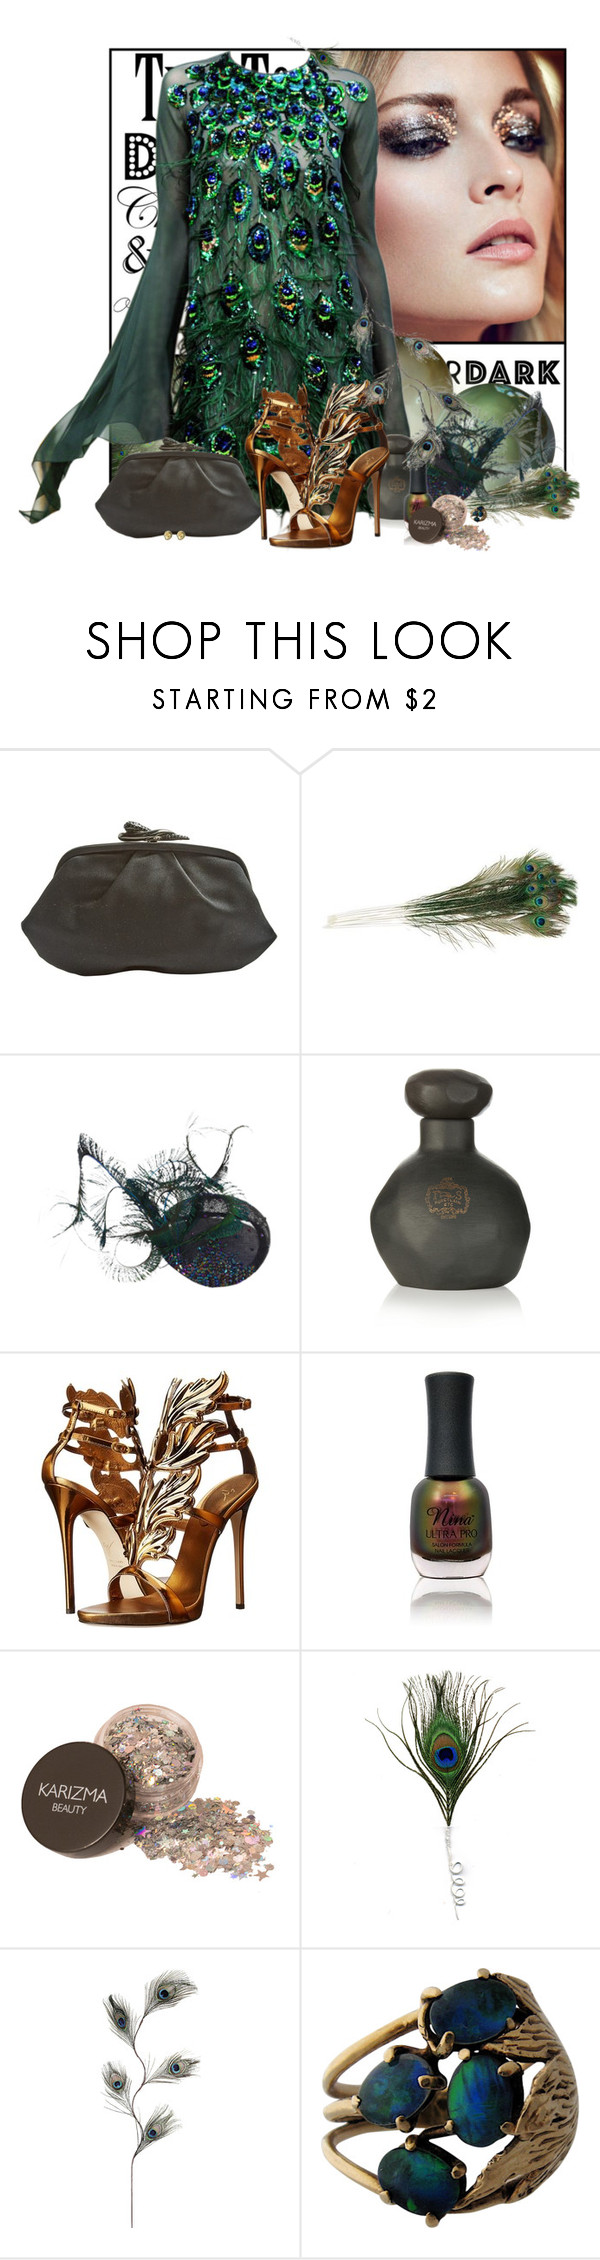 """Extravagant plumage"" by pusja76 ❤ liked on Polyvore featuring Yanina, Rodo, Joya, Giuseppe Zanotti, Charlotte Russe, Tiffany & Co. and afterdark"